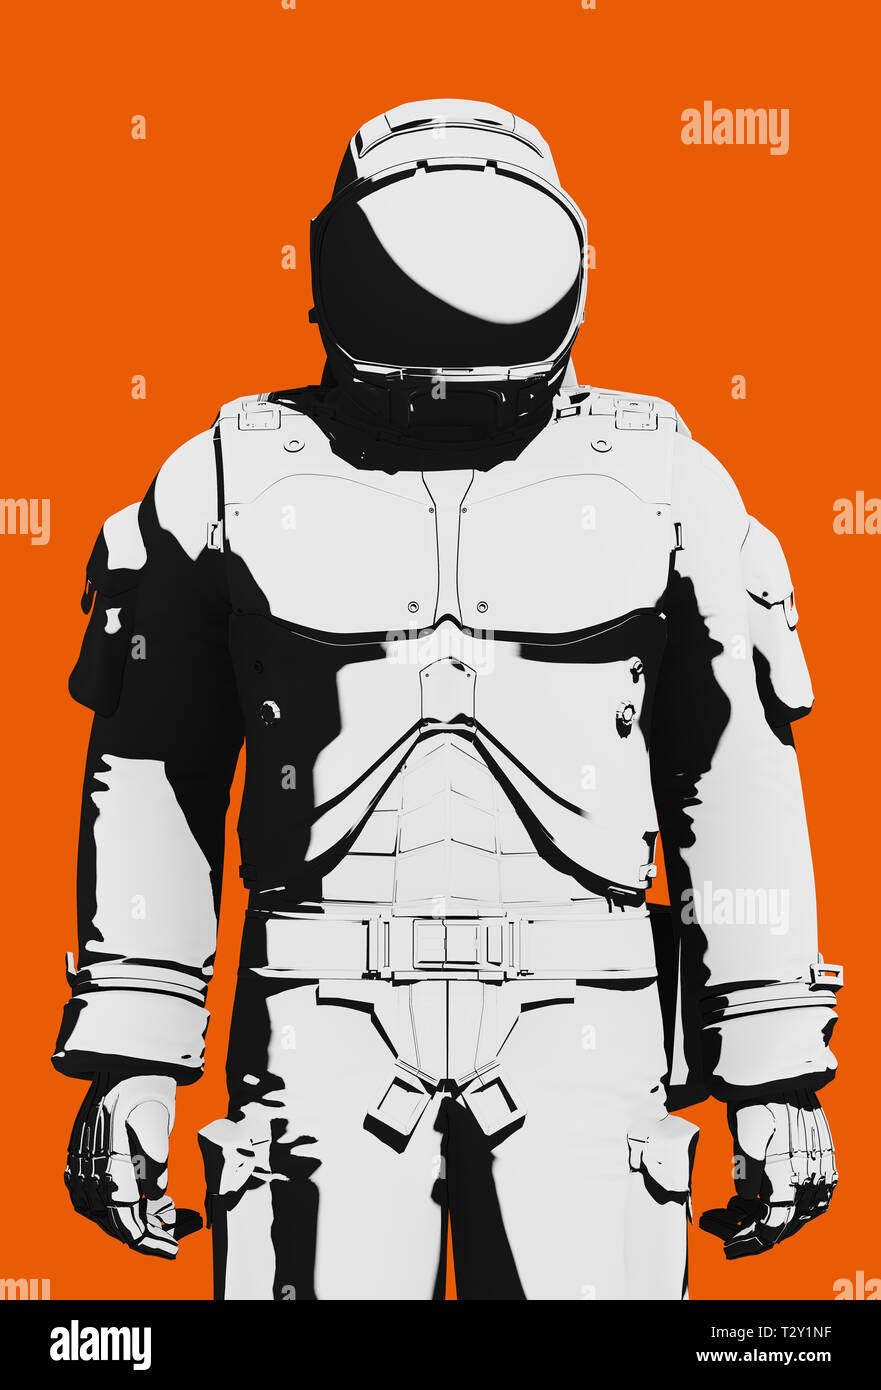 Black and white astronaut  functional extravehicular activity space suit on orange background. Front view close up, line art rendering digital illustr - Stock Image